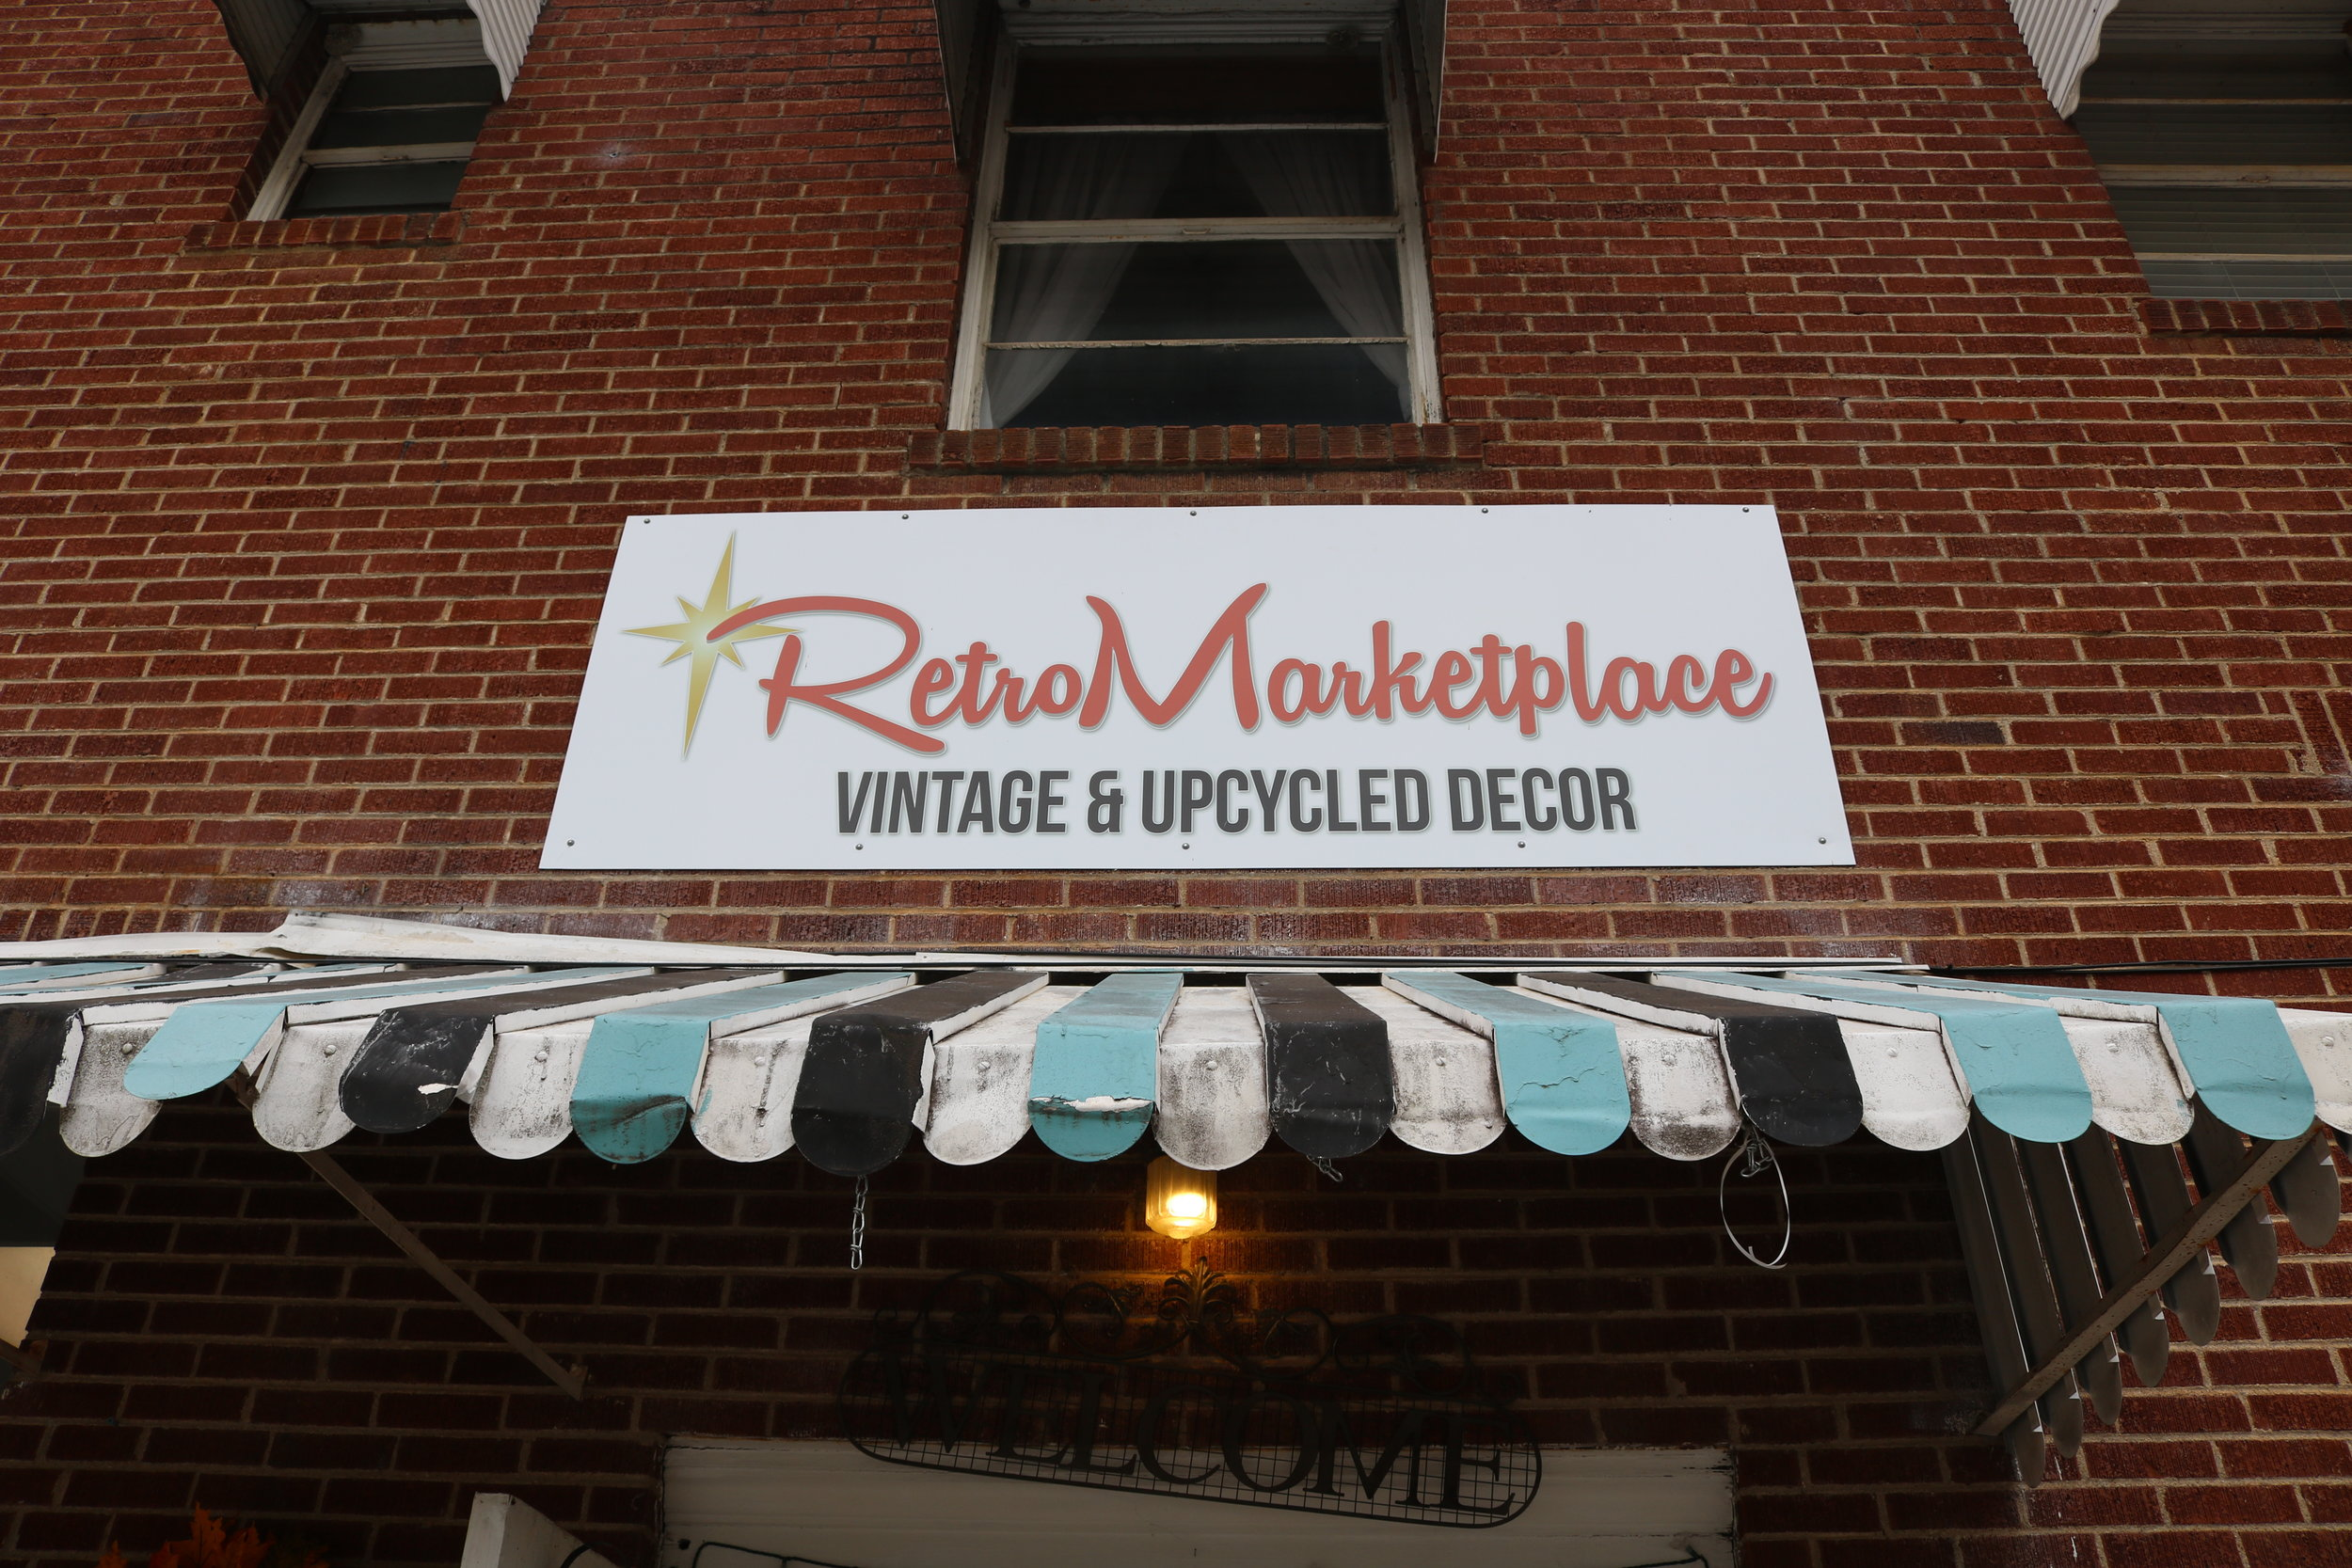 RetroMarketplace Vintage & Upcycled Decor at 128 S. Main St., Travelers Rest, SC.